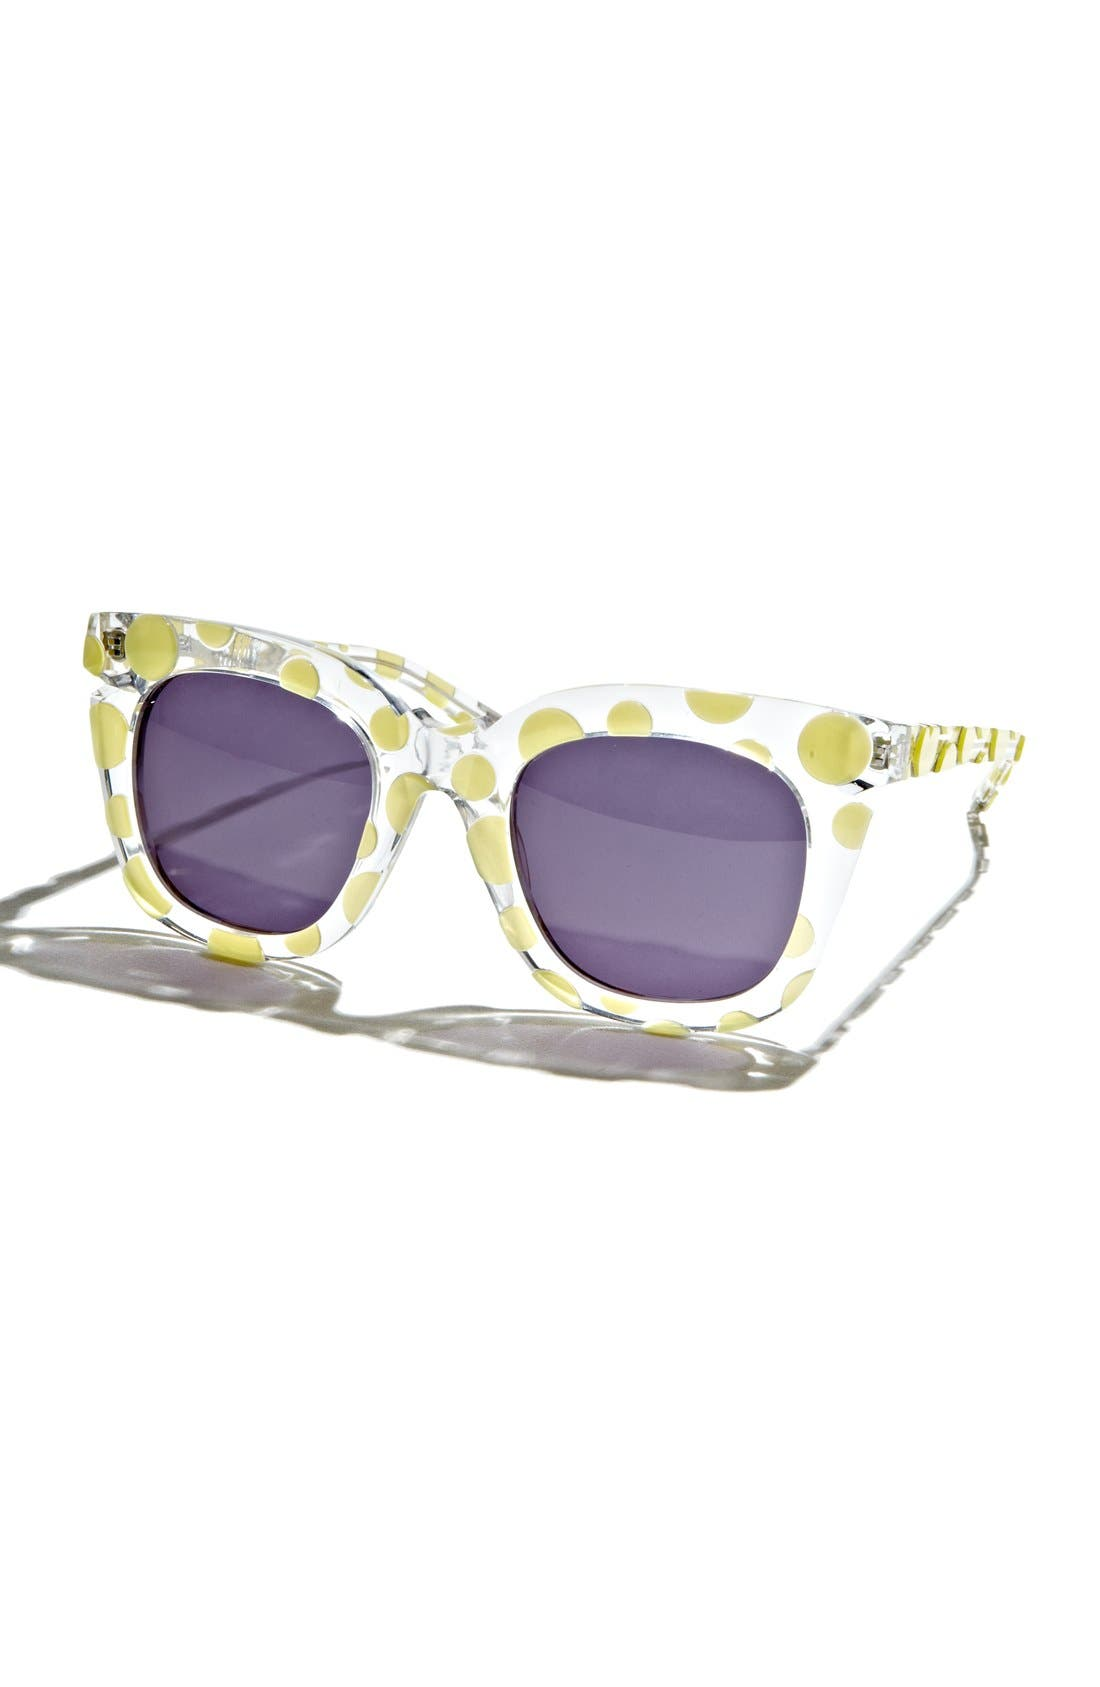 Main Image - Pared 'Pools & Palms - Clear & Sunny Polka Dot' 50mm Sunglasses